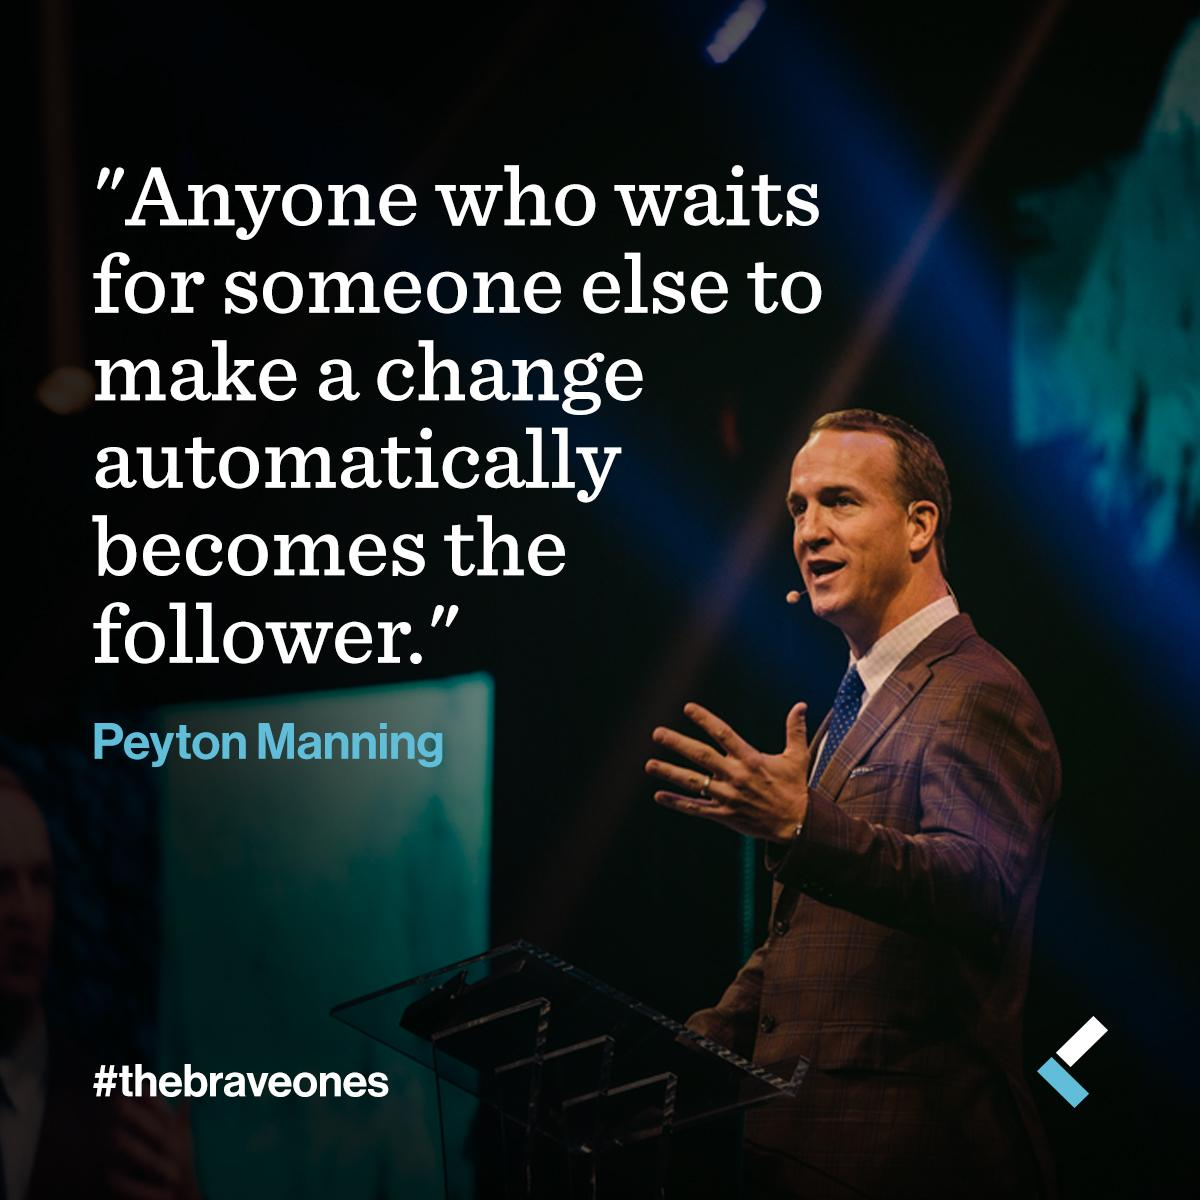 #PeytonManning #thebraveones #Leadercast http://t.co/pH0LTr678y